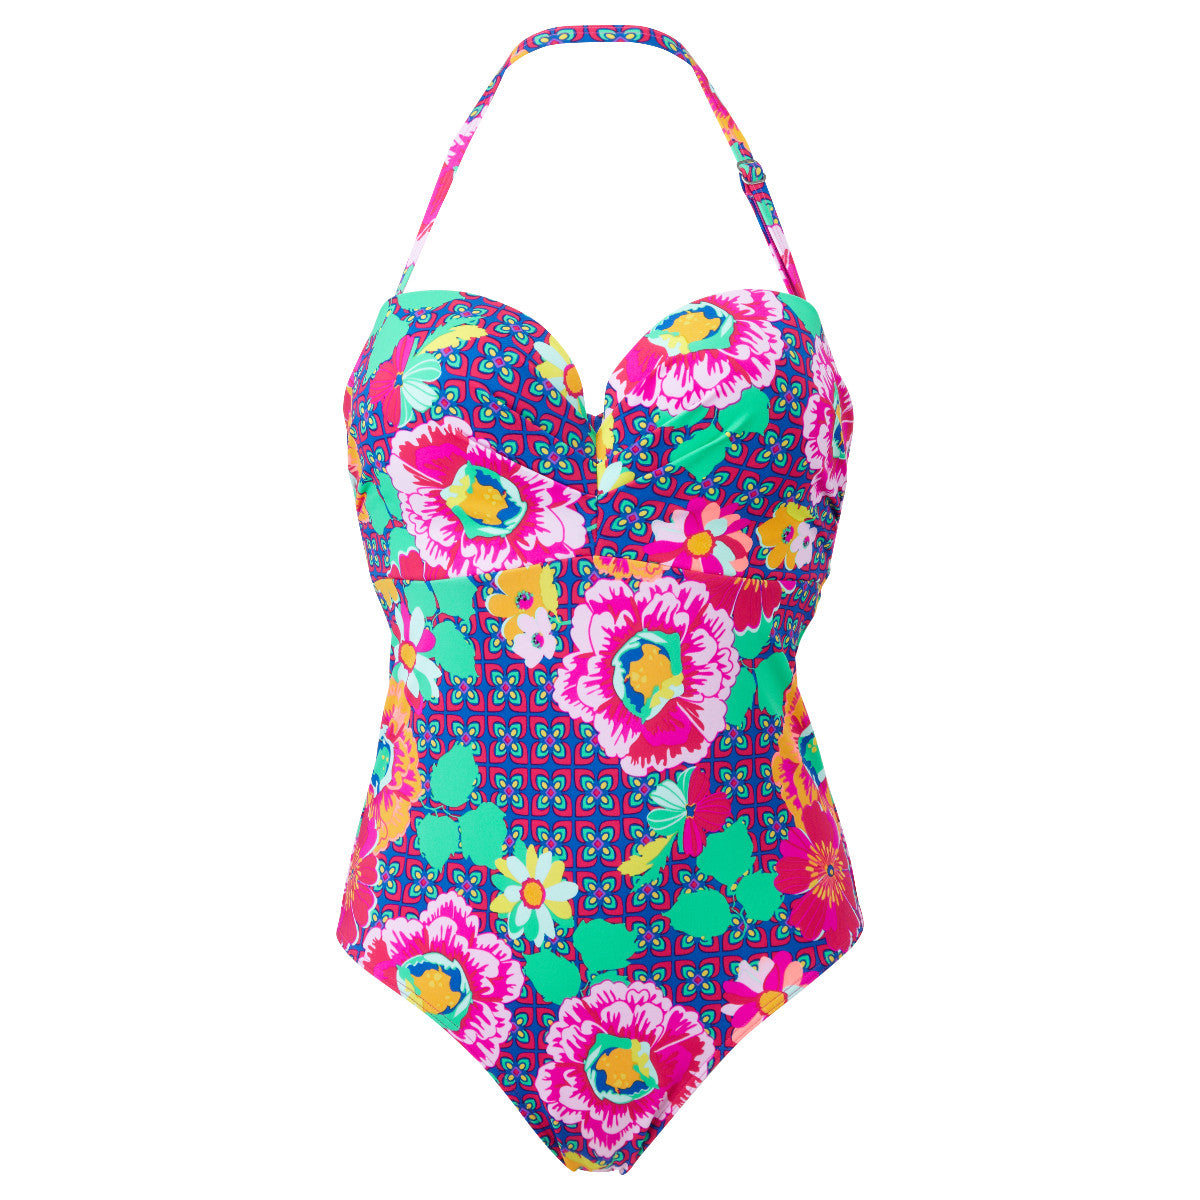 156c172932 Lepel Swim Sun Kiss Floral Print Bandeau One Piece Swimsuit ...